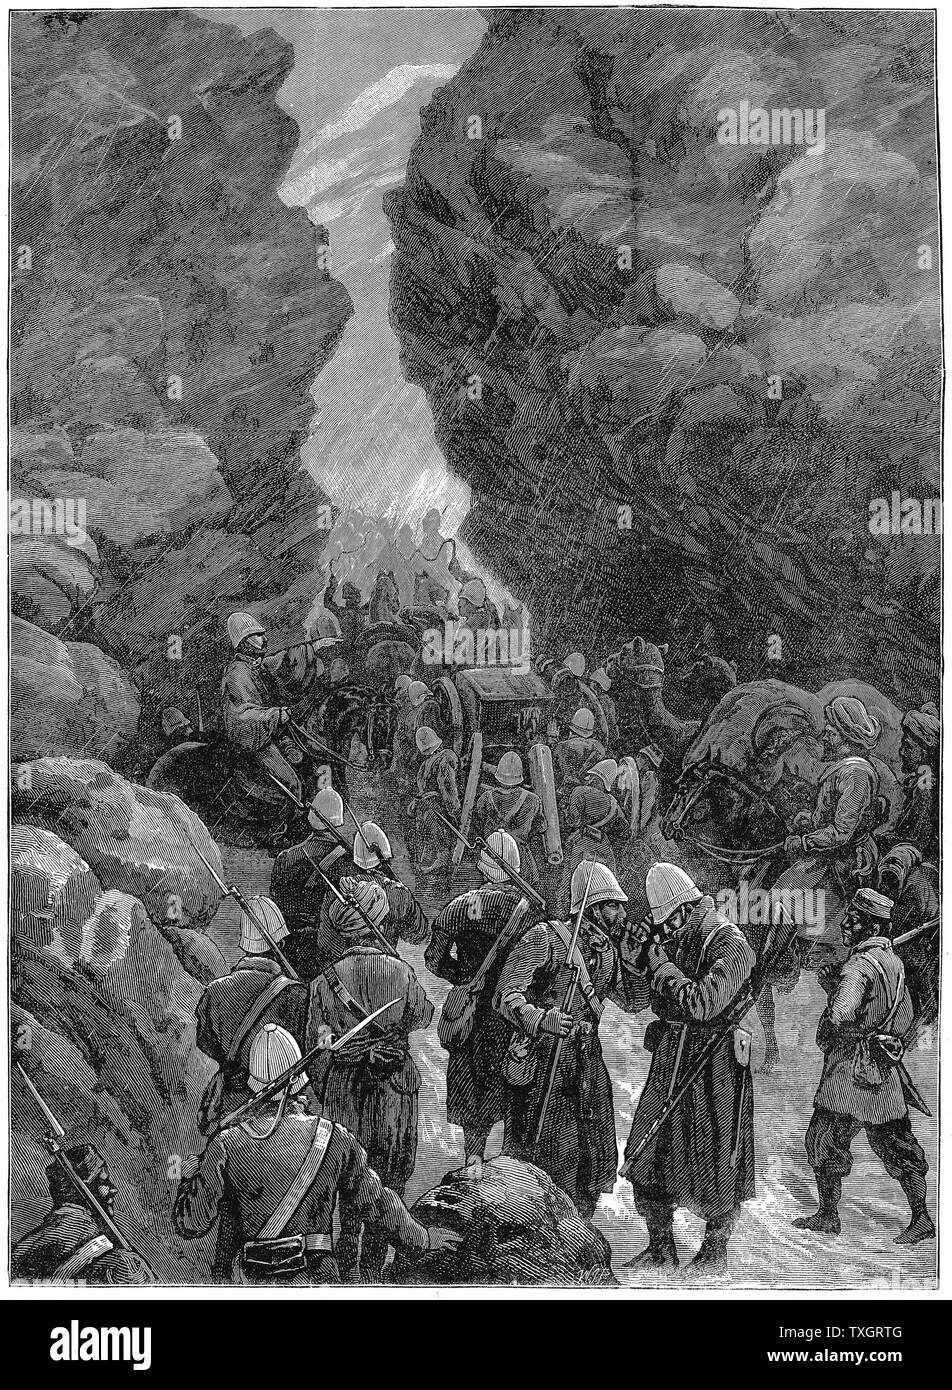 Second Anglo-Afghan War (1878-1880): A block in the Jugdulluk Pass: British troops having difficulties on their way to reinforce General Roberts at Cabul (Kabul). December 1879 January 1880    Wood engraving - Stock Image